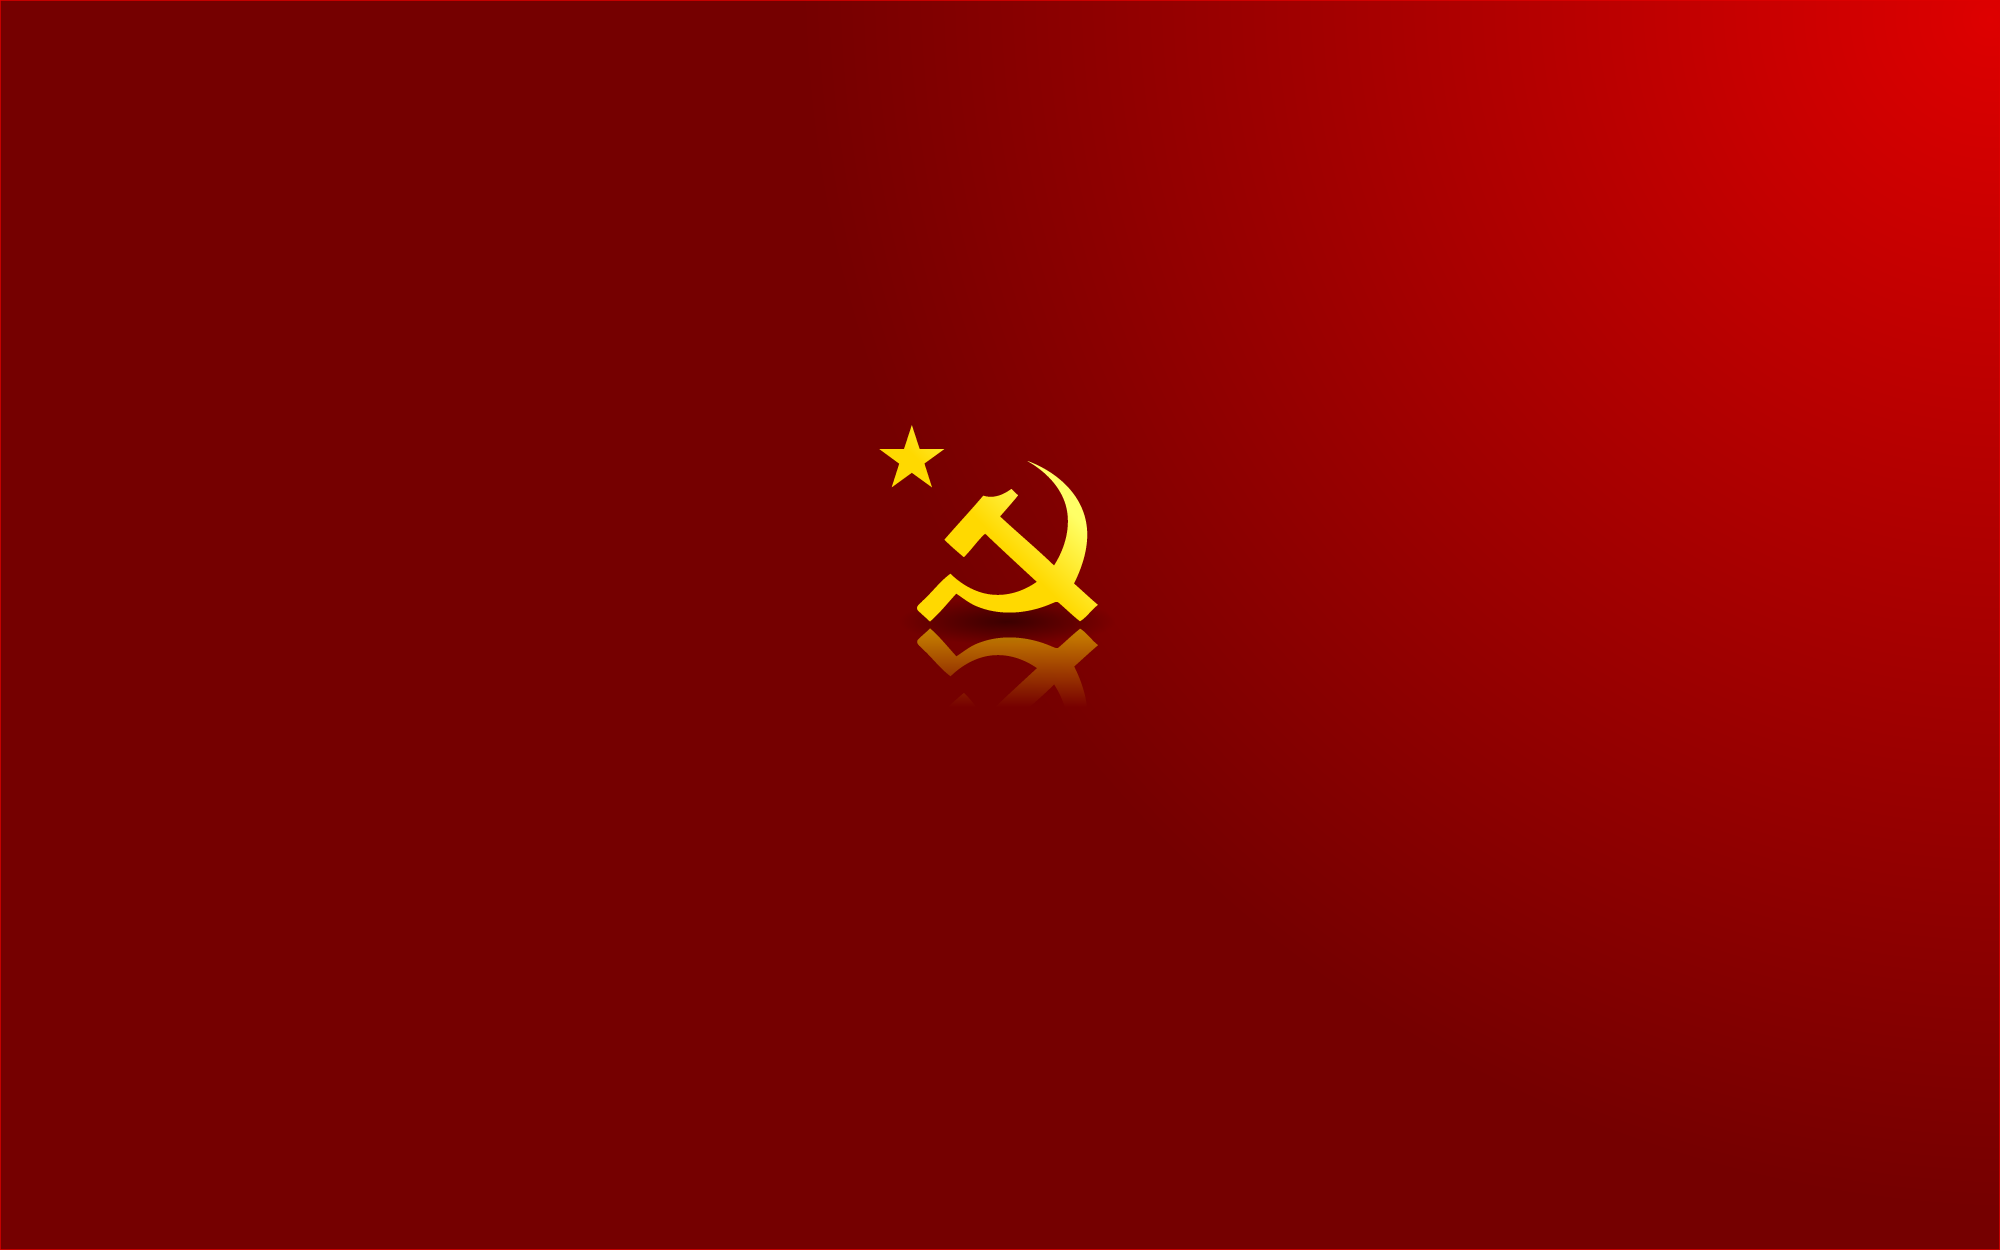 Amazing 39768576 Soviet Wallpapers | 2000x1250